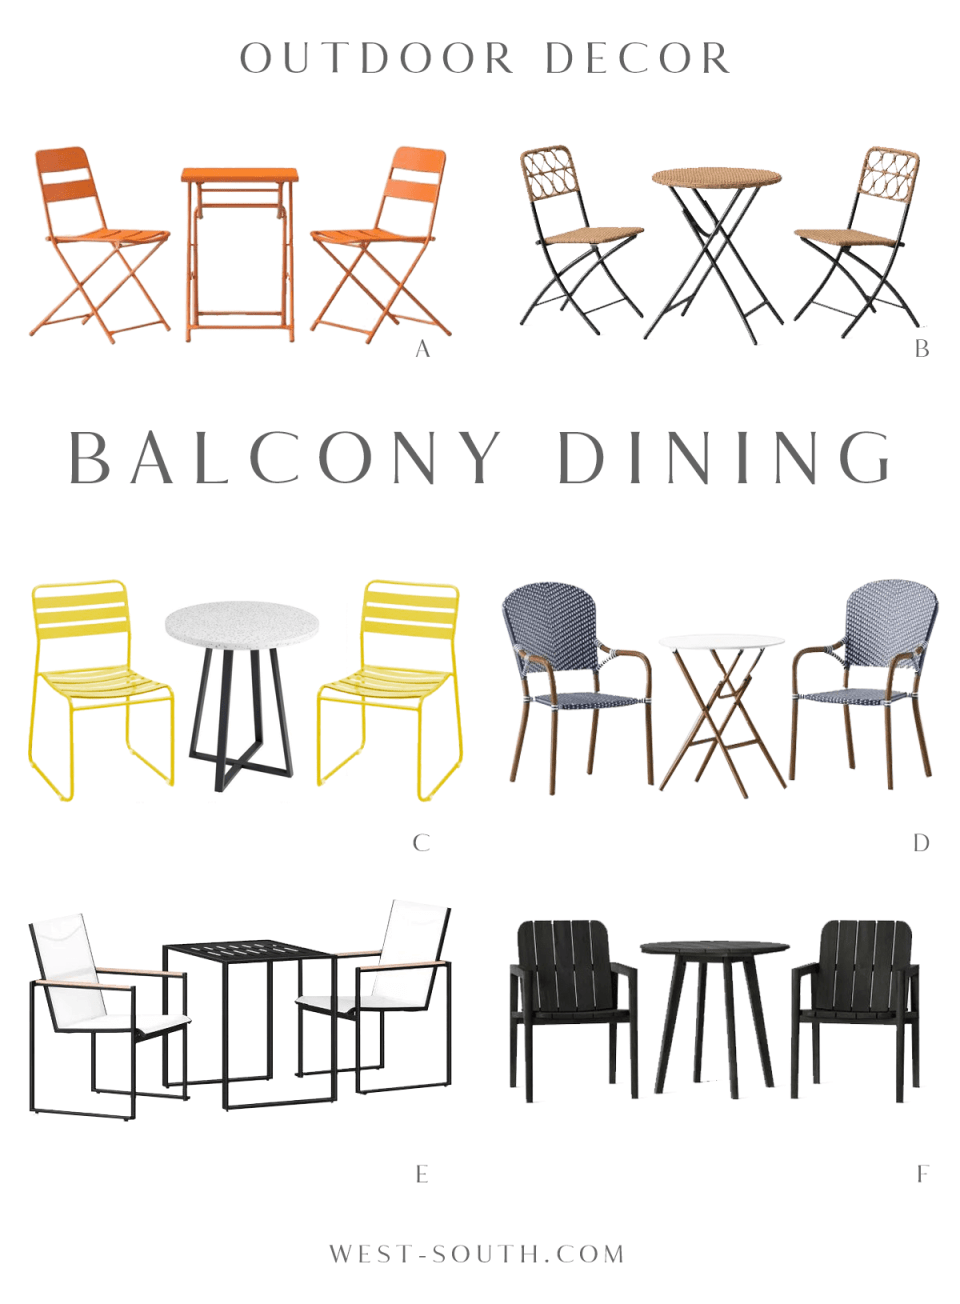 round up of balcony dining furniture by West-South